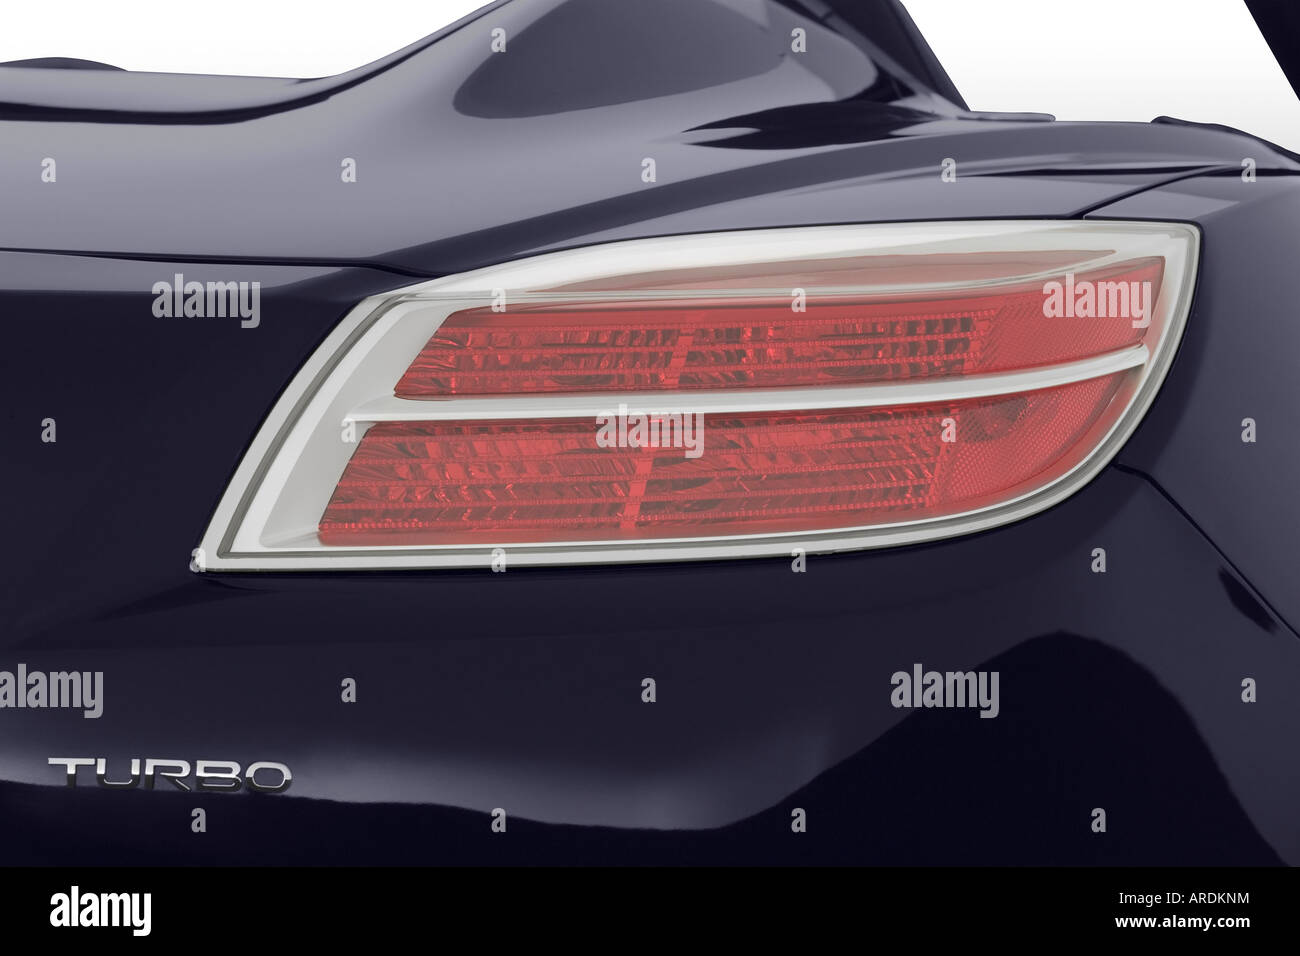 Saturn Sky Tail Light Replacement Wiring Diagram Skytail Red Line In Blue Stock Image 1300x956